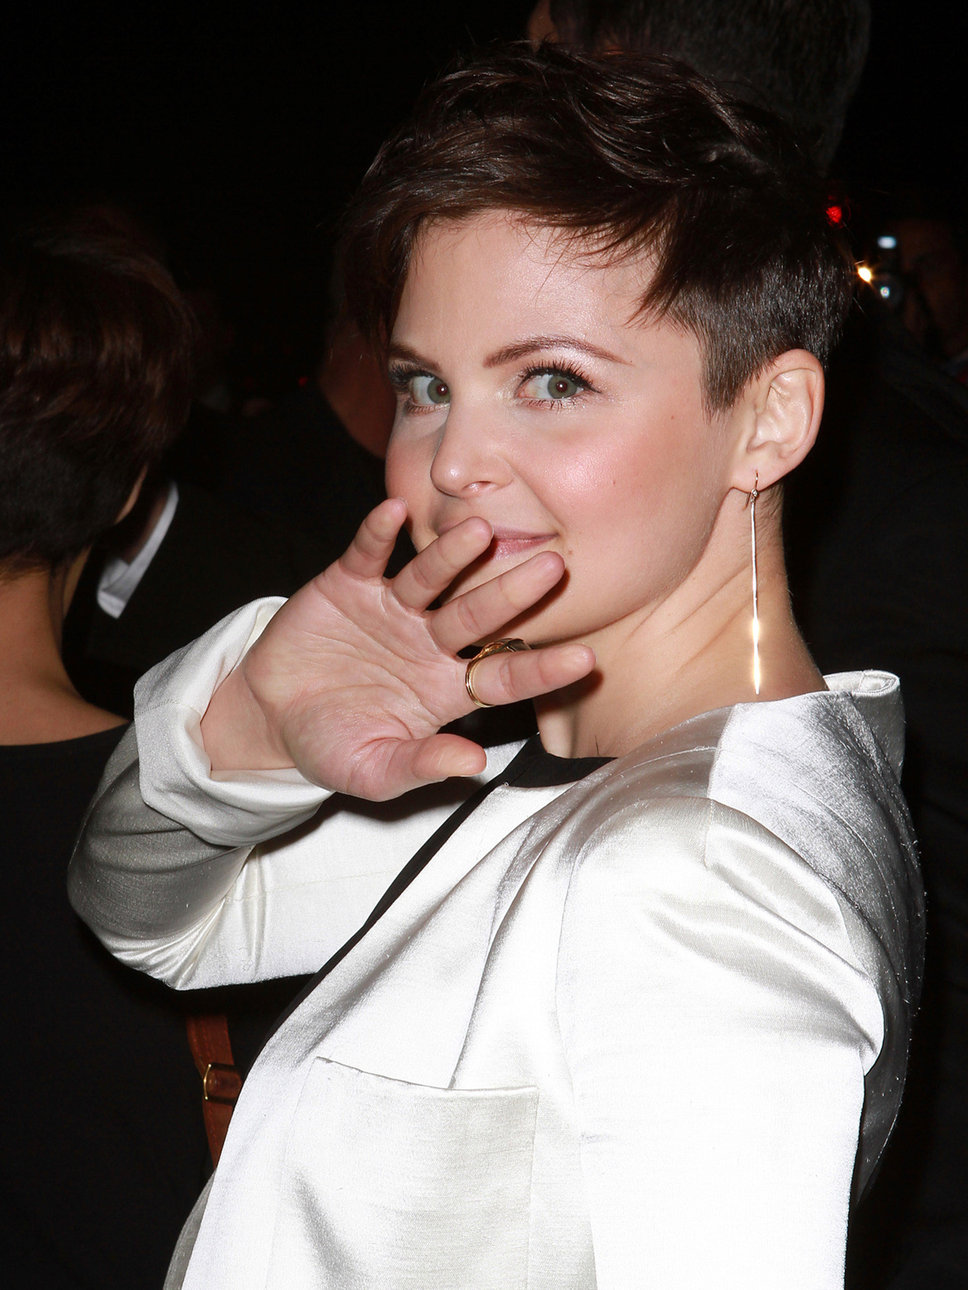 Pixie Haircut Gallery: Best Celebrity Pixie Haircuts Ever ...